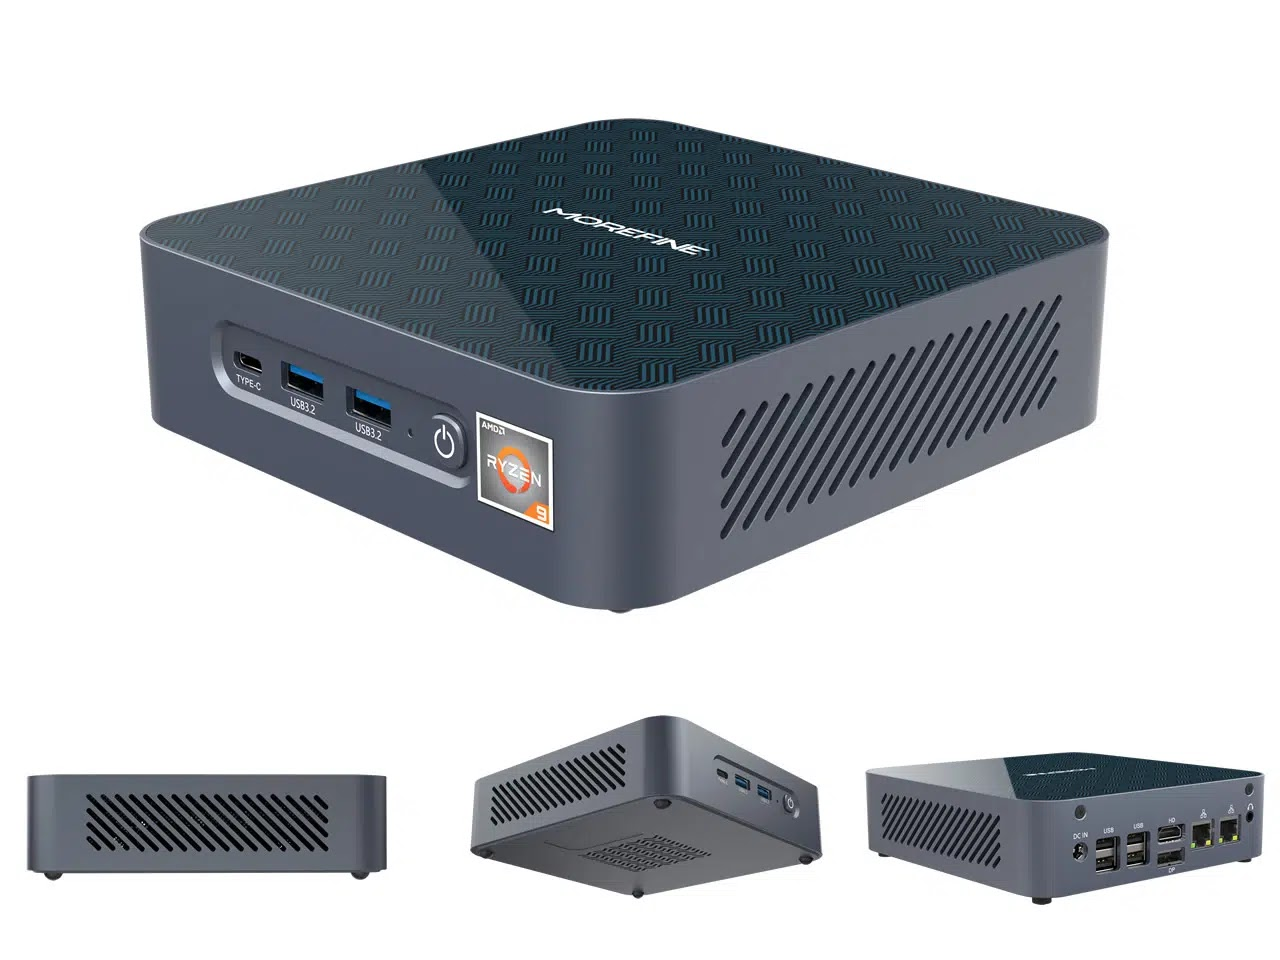 Chuwi invites PC enthusiasts from all over the world to build the world's most powerful Mini PC